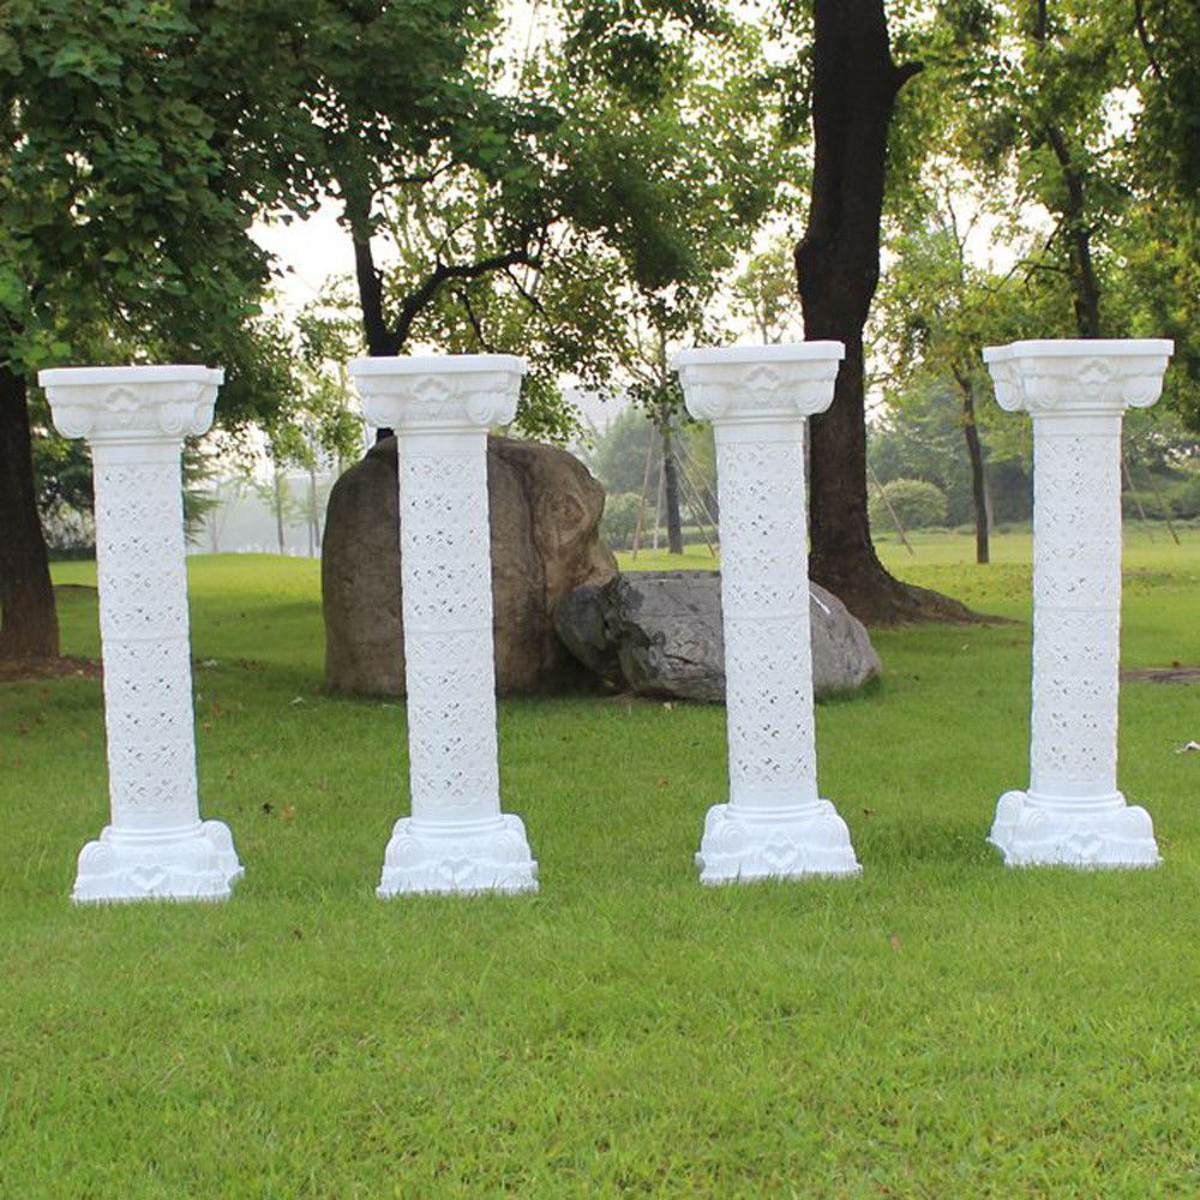 98CM Plastic Roman Pillar Column Pedstal Prop Stand Holder Wedding Party Decor Supplies